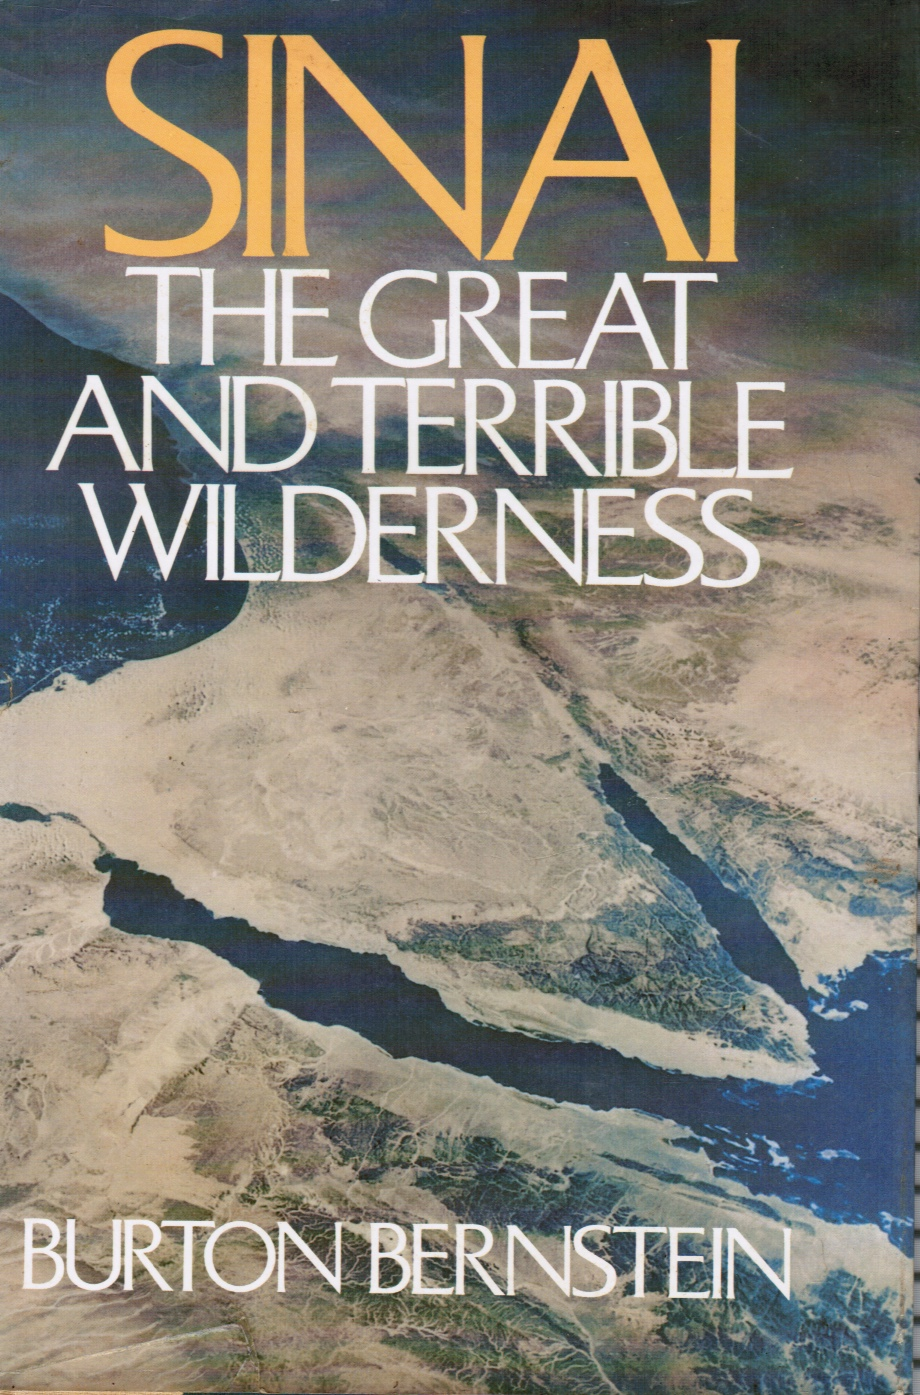 Image for Sinai the Great and Terrible Wilderness